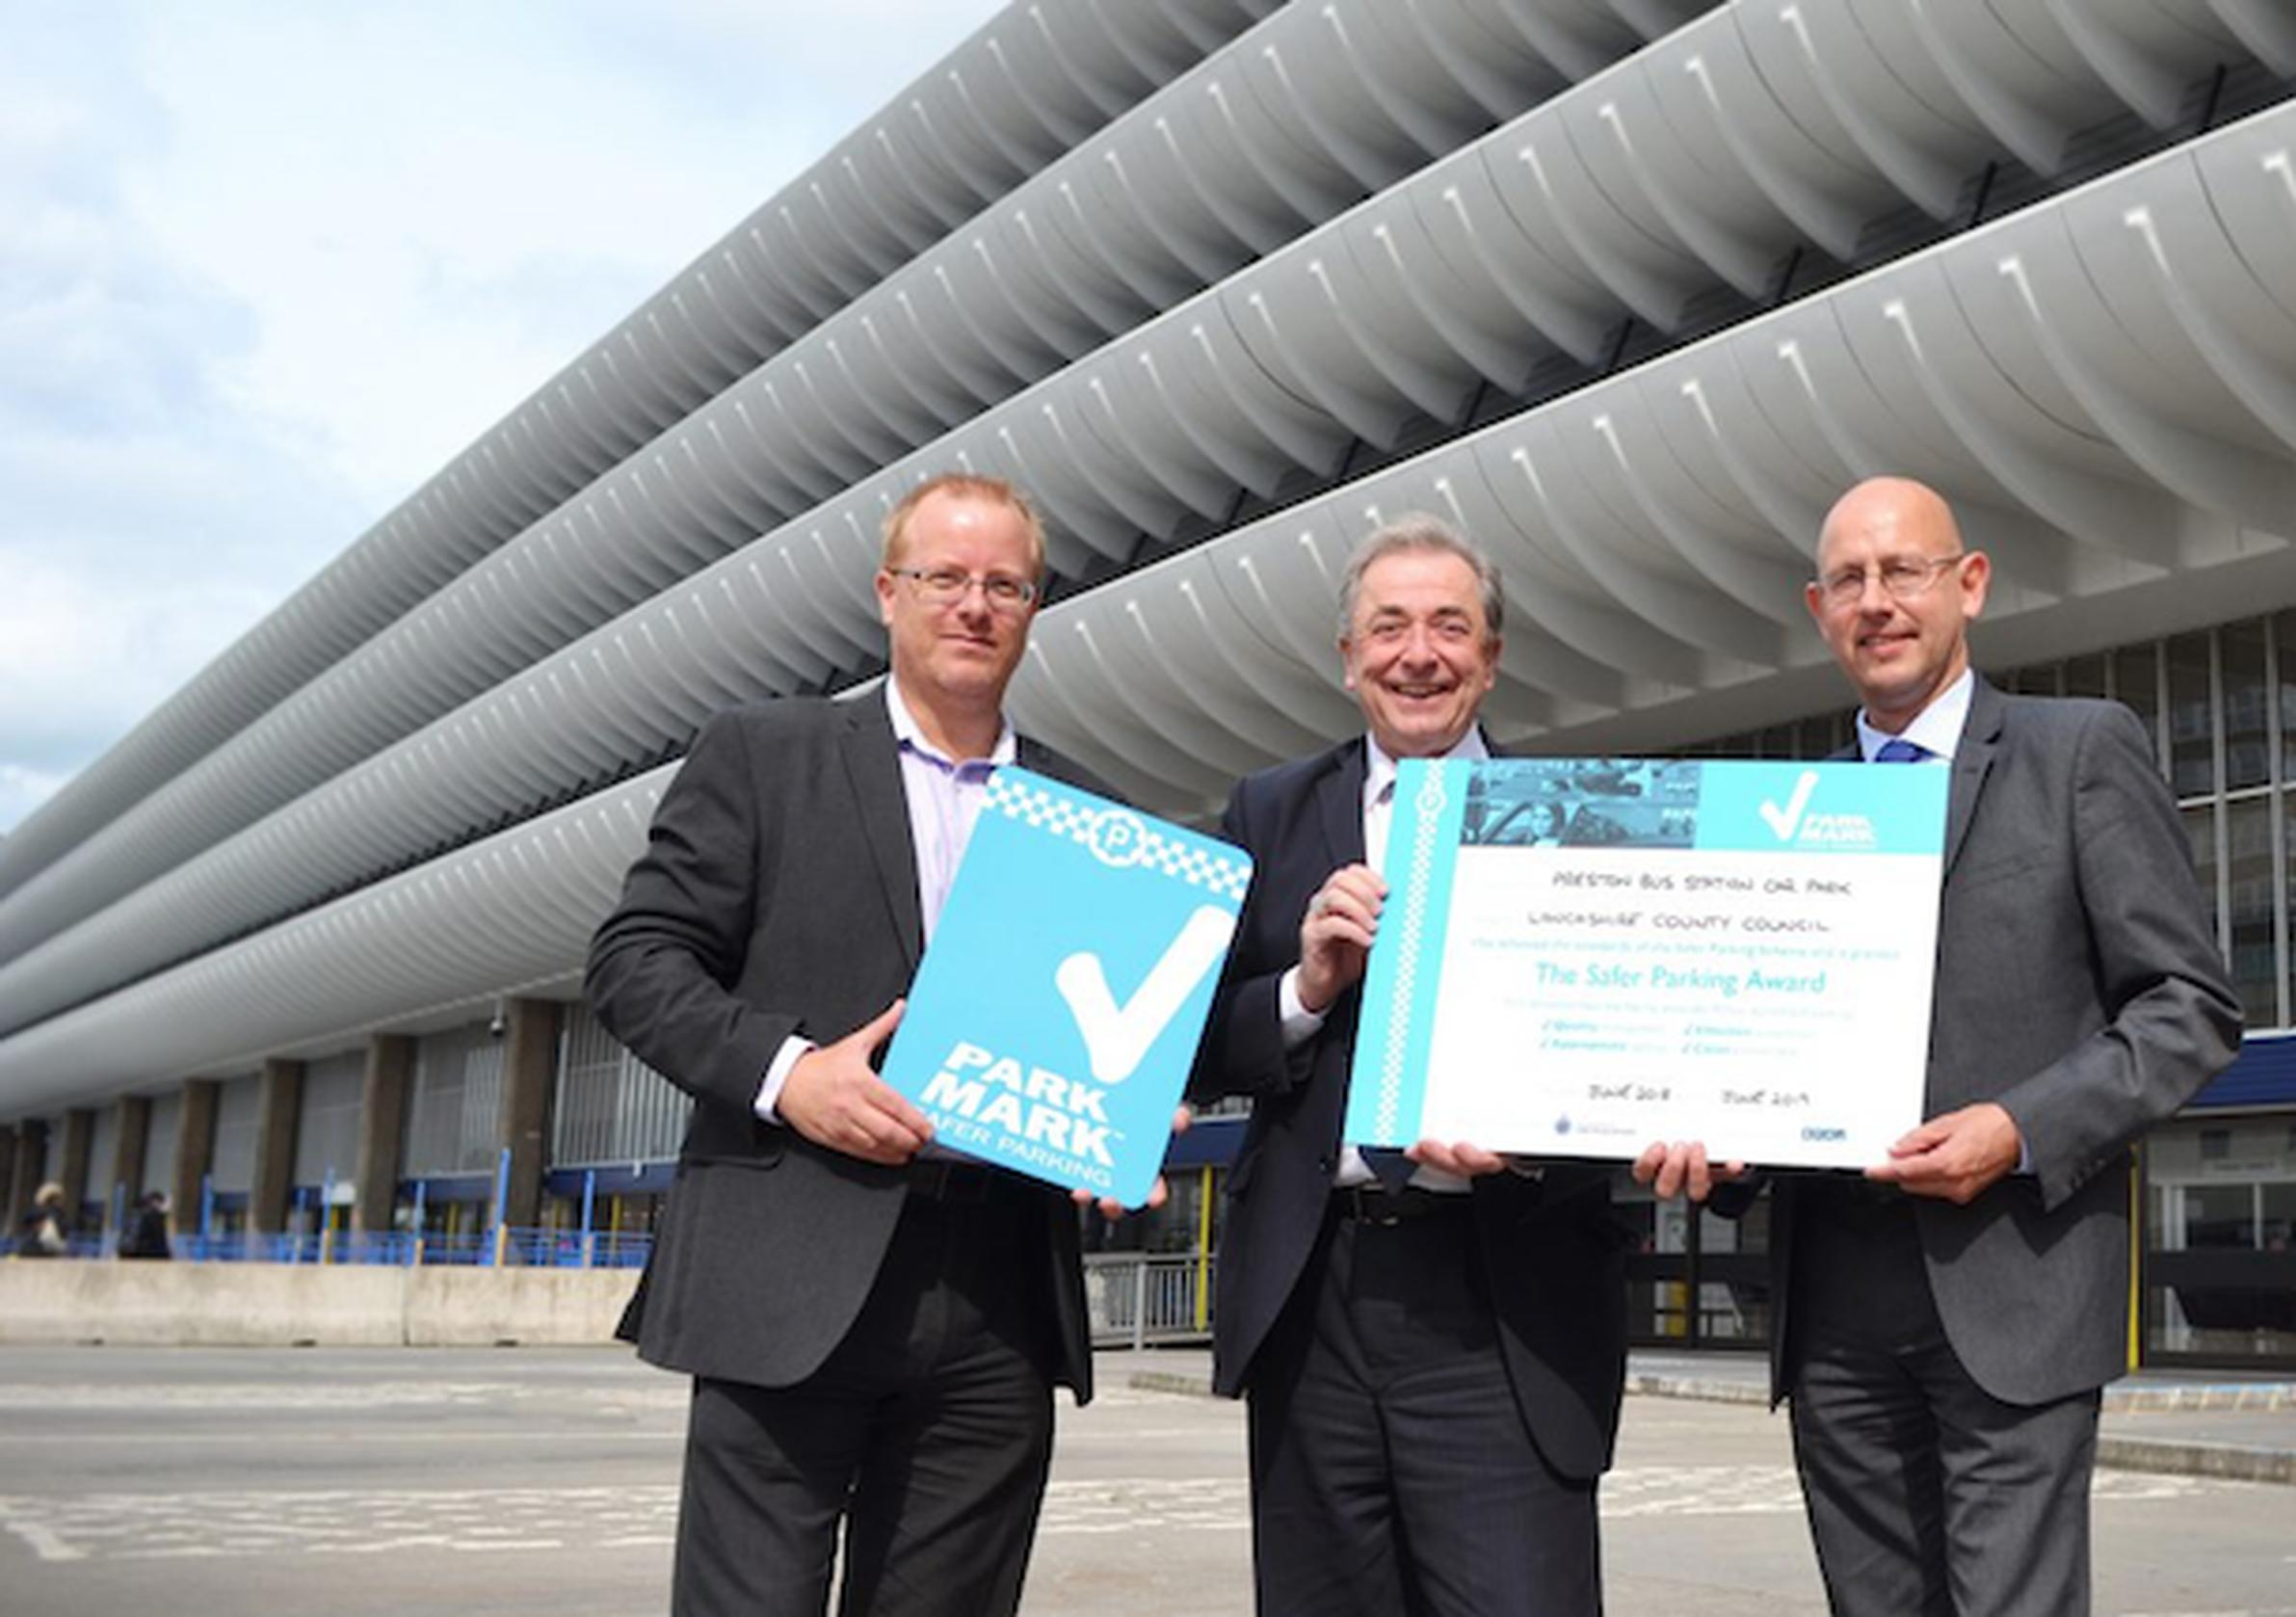 Peter Bell, regulation and enforcement manager, Lancashire County Council, Cllr Keith Iddon, cabinet member for highways and transport, Lancashire County Council and Mark Osmond, BPA area manager